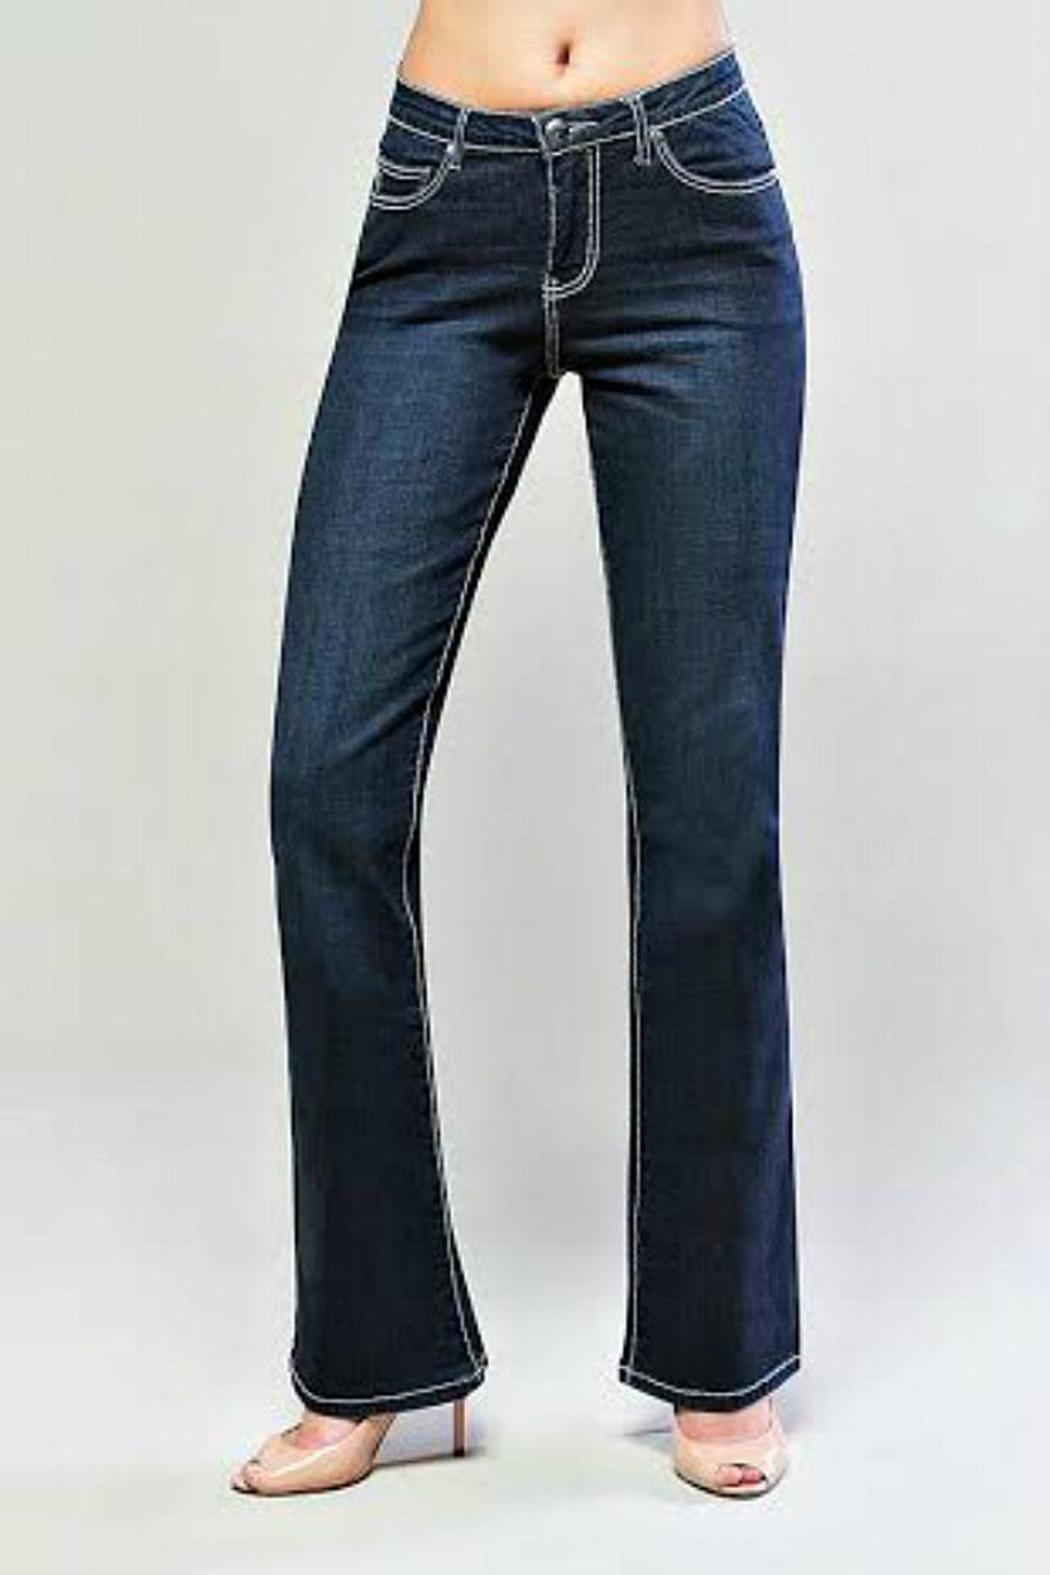 Shop online for True Religion Brand Jeans for women, men and kids at ganjamoney.tk Check out our entire collection. Read product reviews or ask questions.